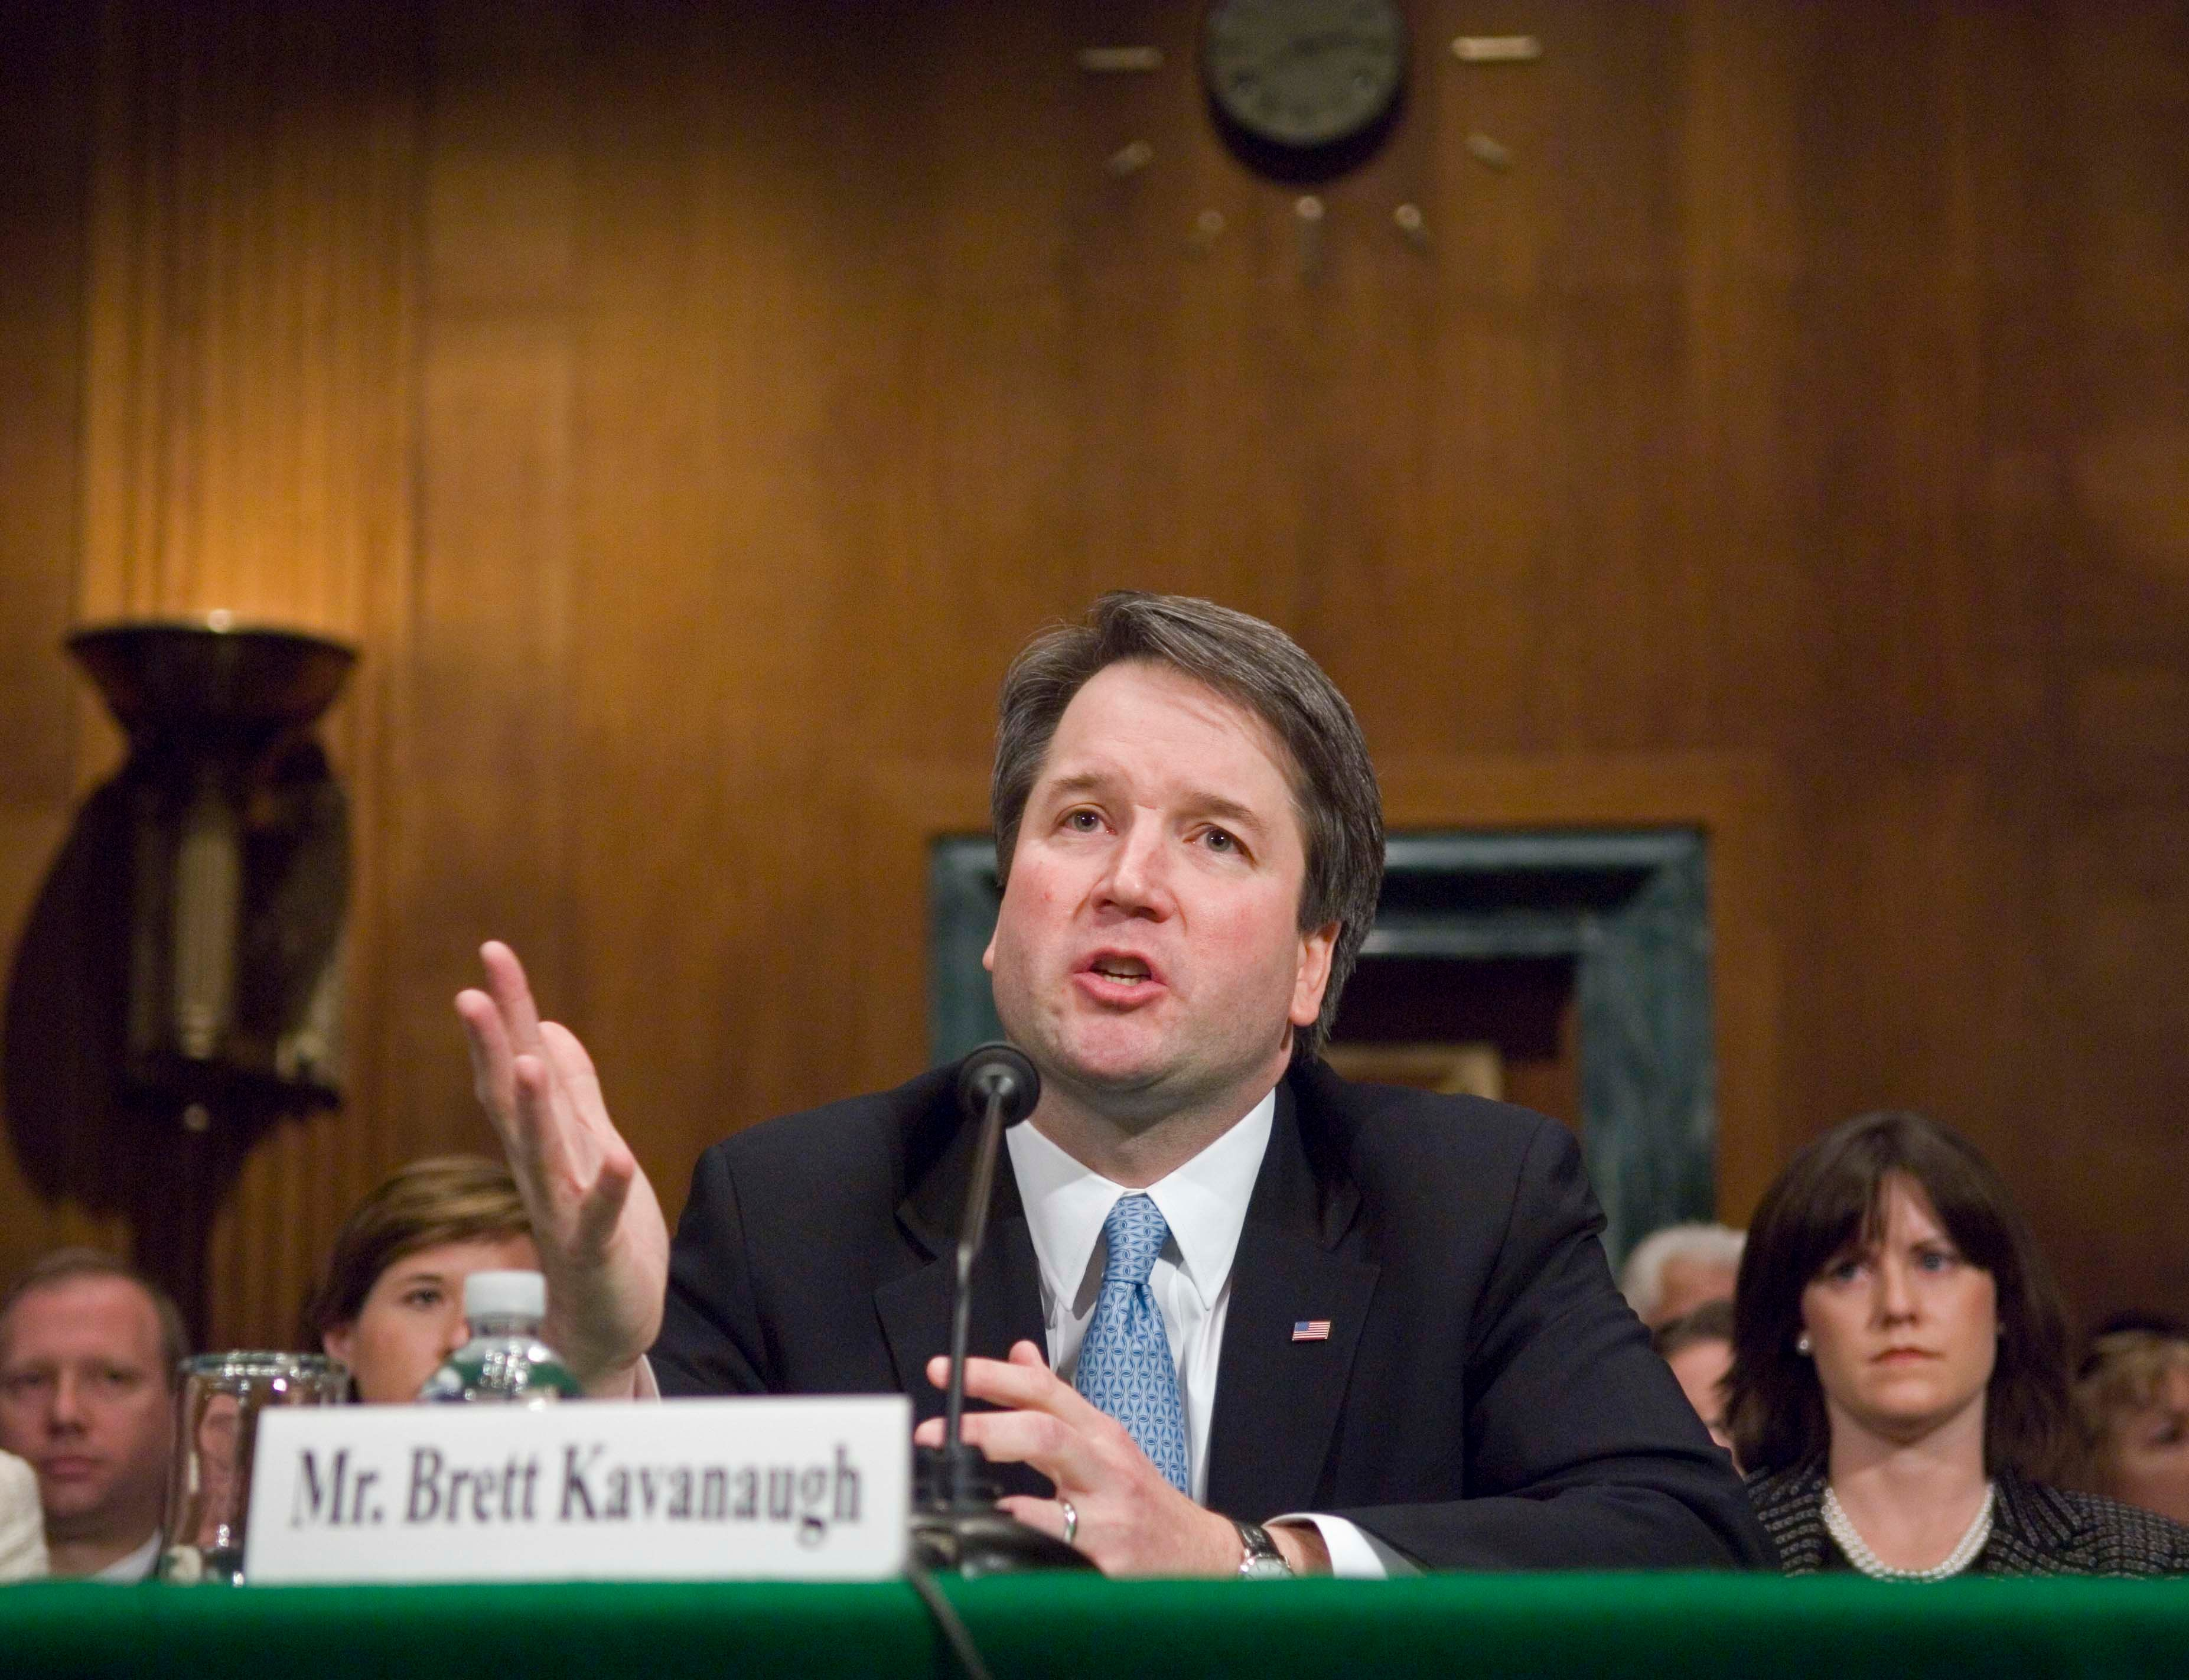 Brett Kavanaugh last appeared before the Senate Judiciary Committee for a confirmation hearing in late April 2004 as Pre